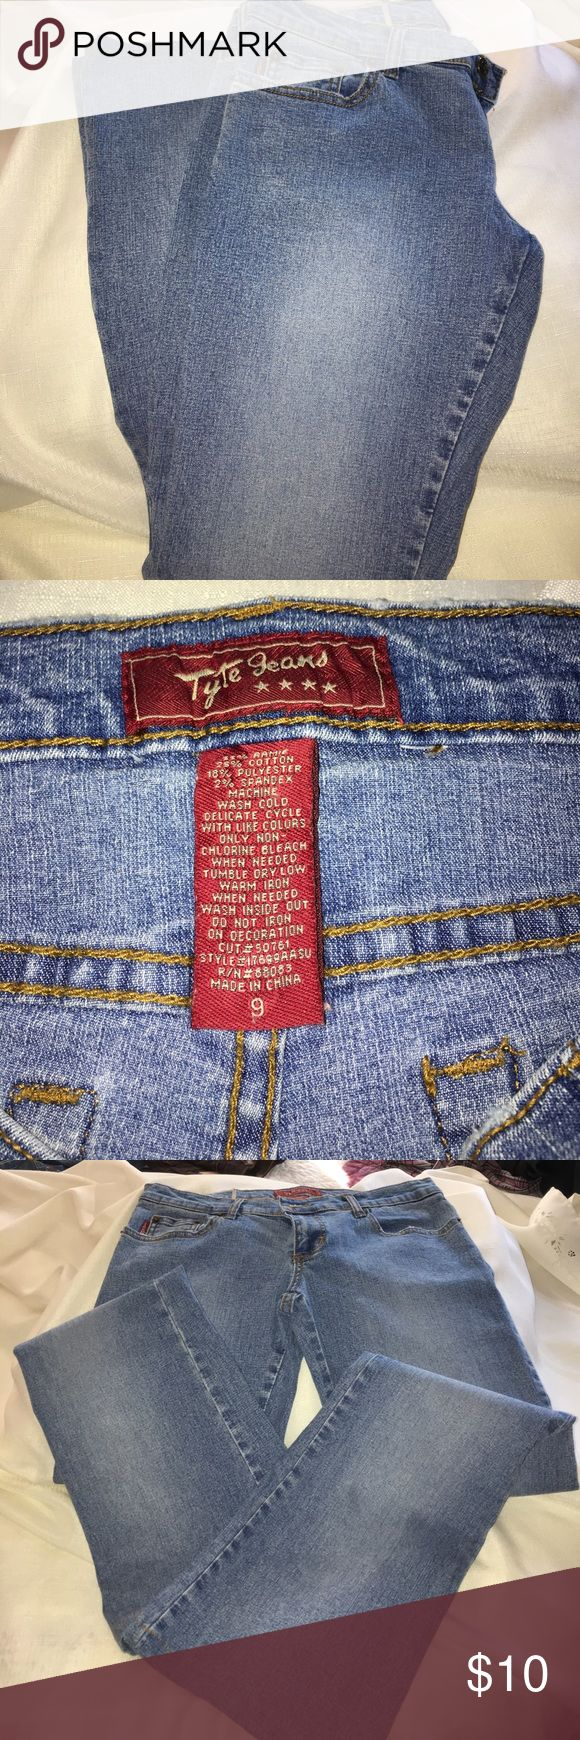 """True Jeans Brand logo blue jeans. Nice washed look blue jeans  soft. Front pockets. 2 back pockets nice embroidered heart designs with crystal embellishment.  Nice condition. Size 9   Cotton polyester and spandex. Inseam approximately 29"""". TYTE JEANS Jeans Straight Leg"""